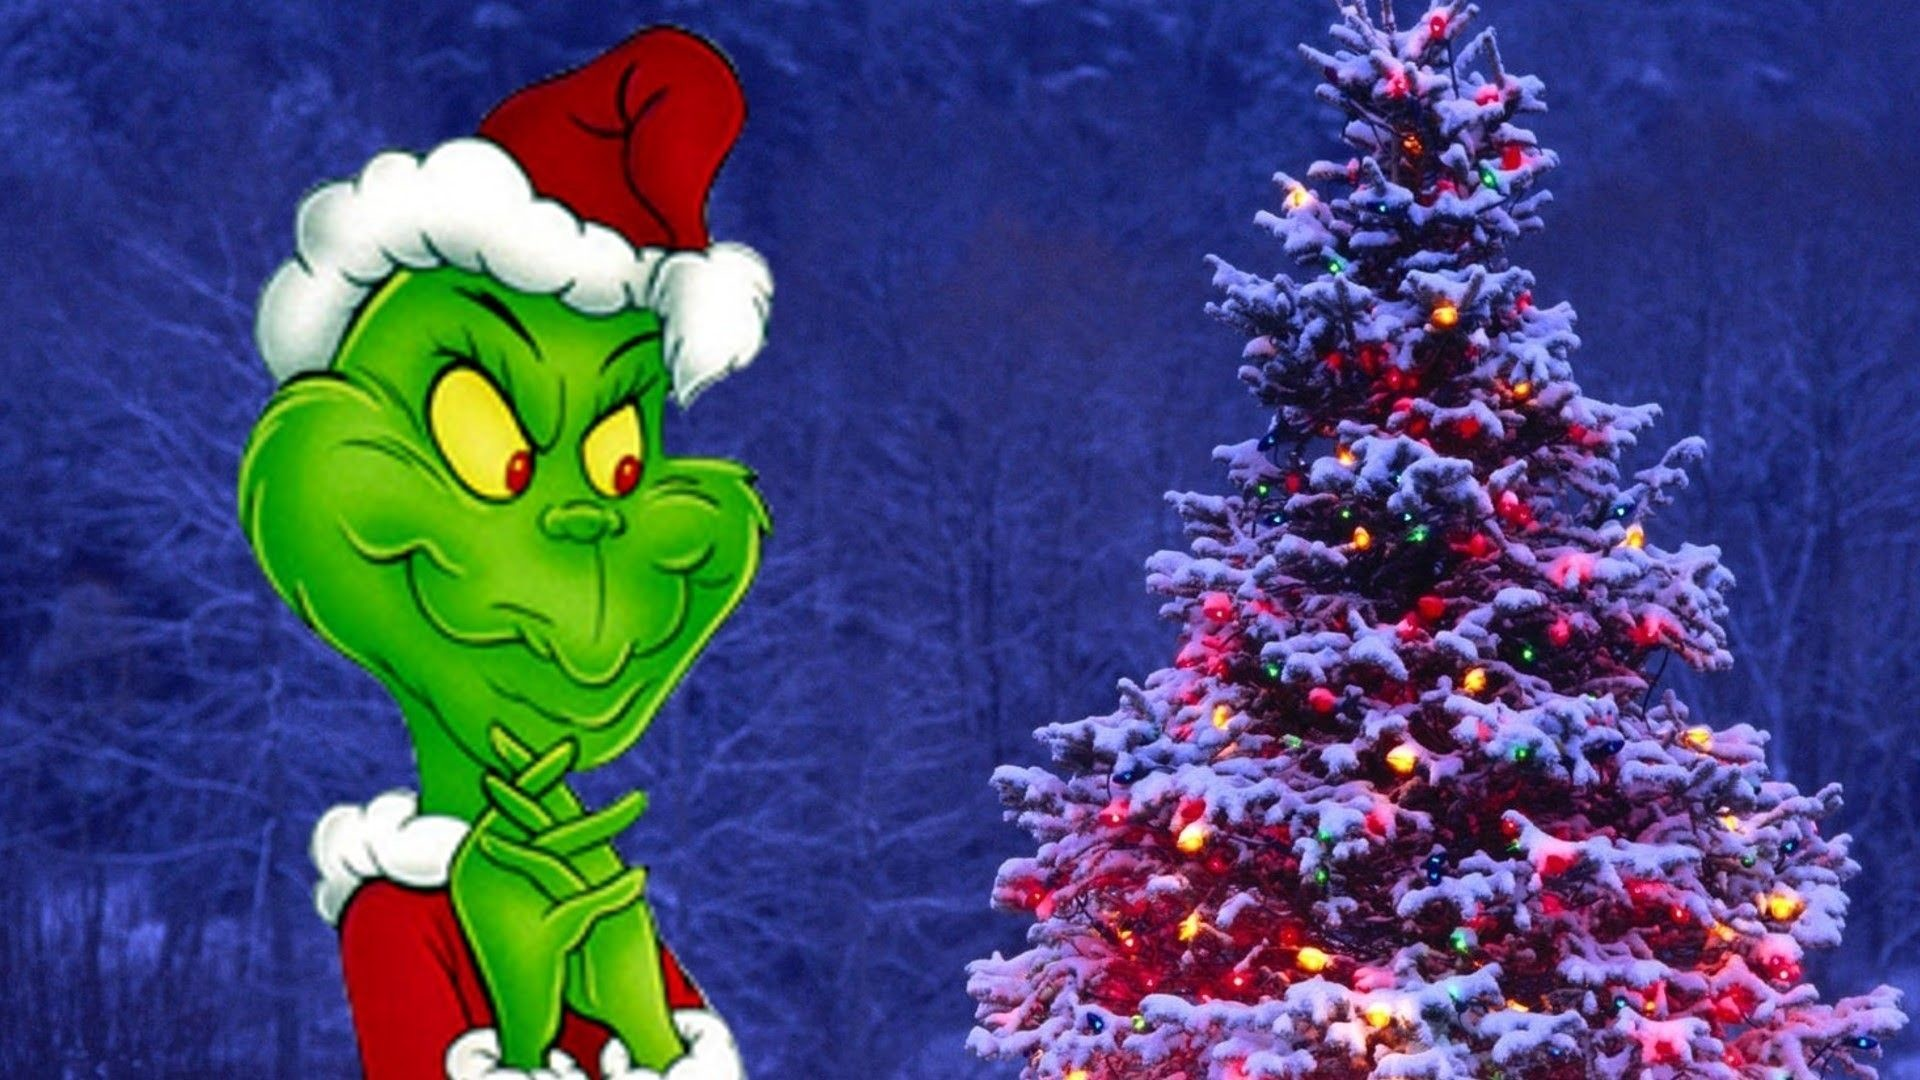 Christmas Wallpaper the Grinch 73 images 1920x1080